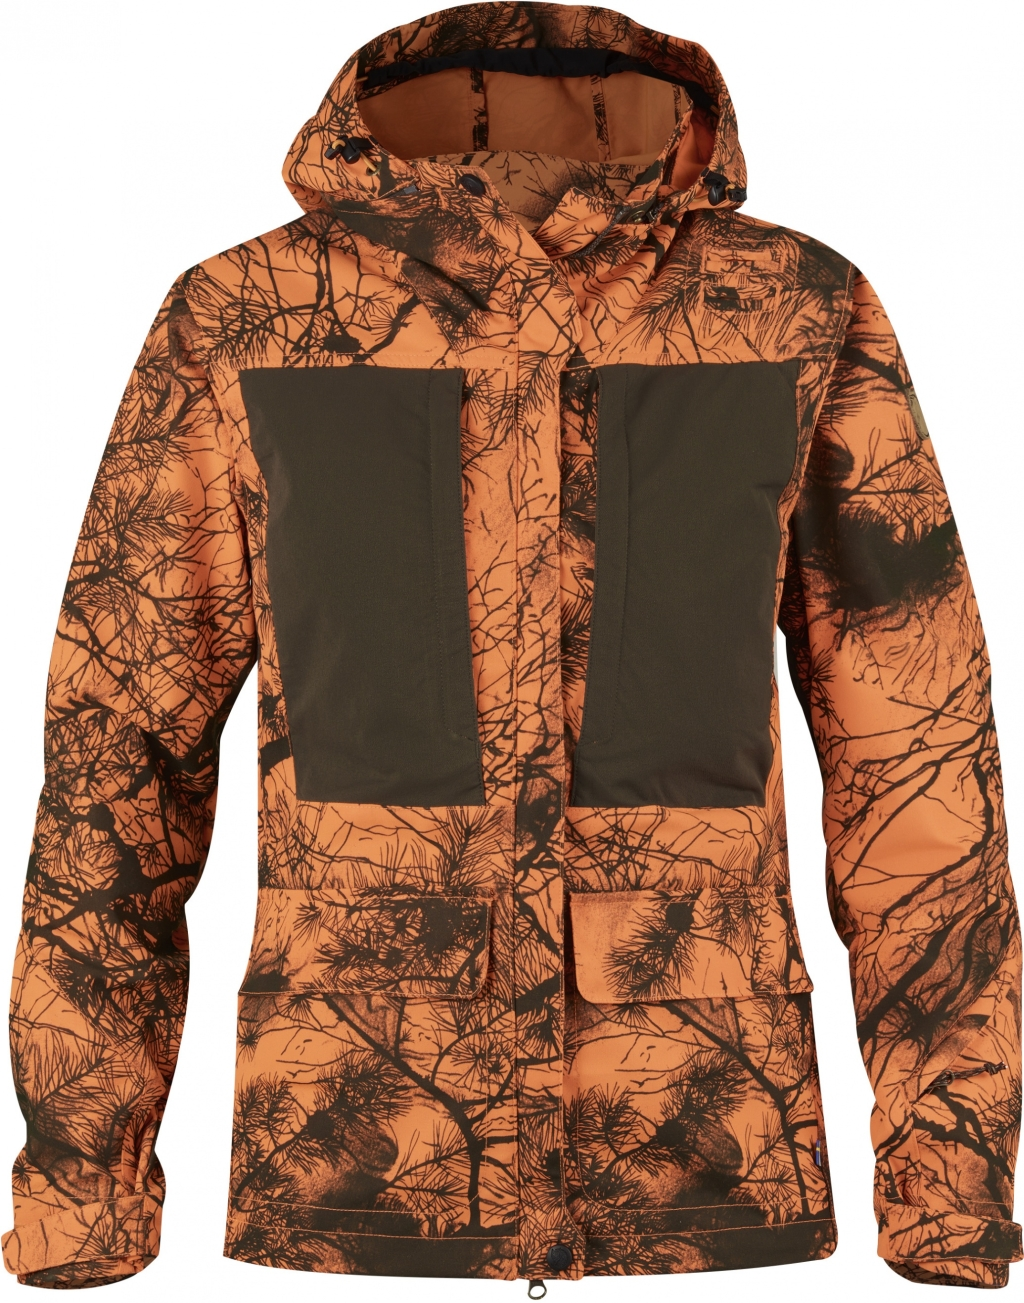 FjallRaven Lappland Hybrid Jacket Camo W Orange Camo-30